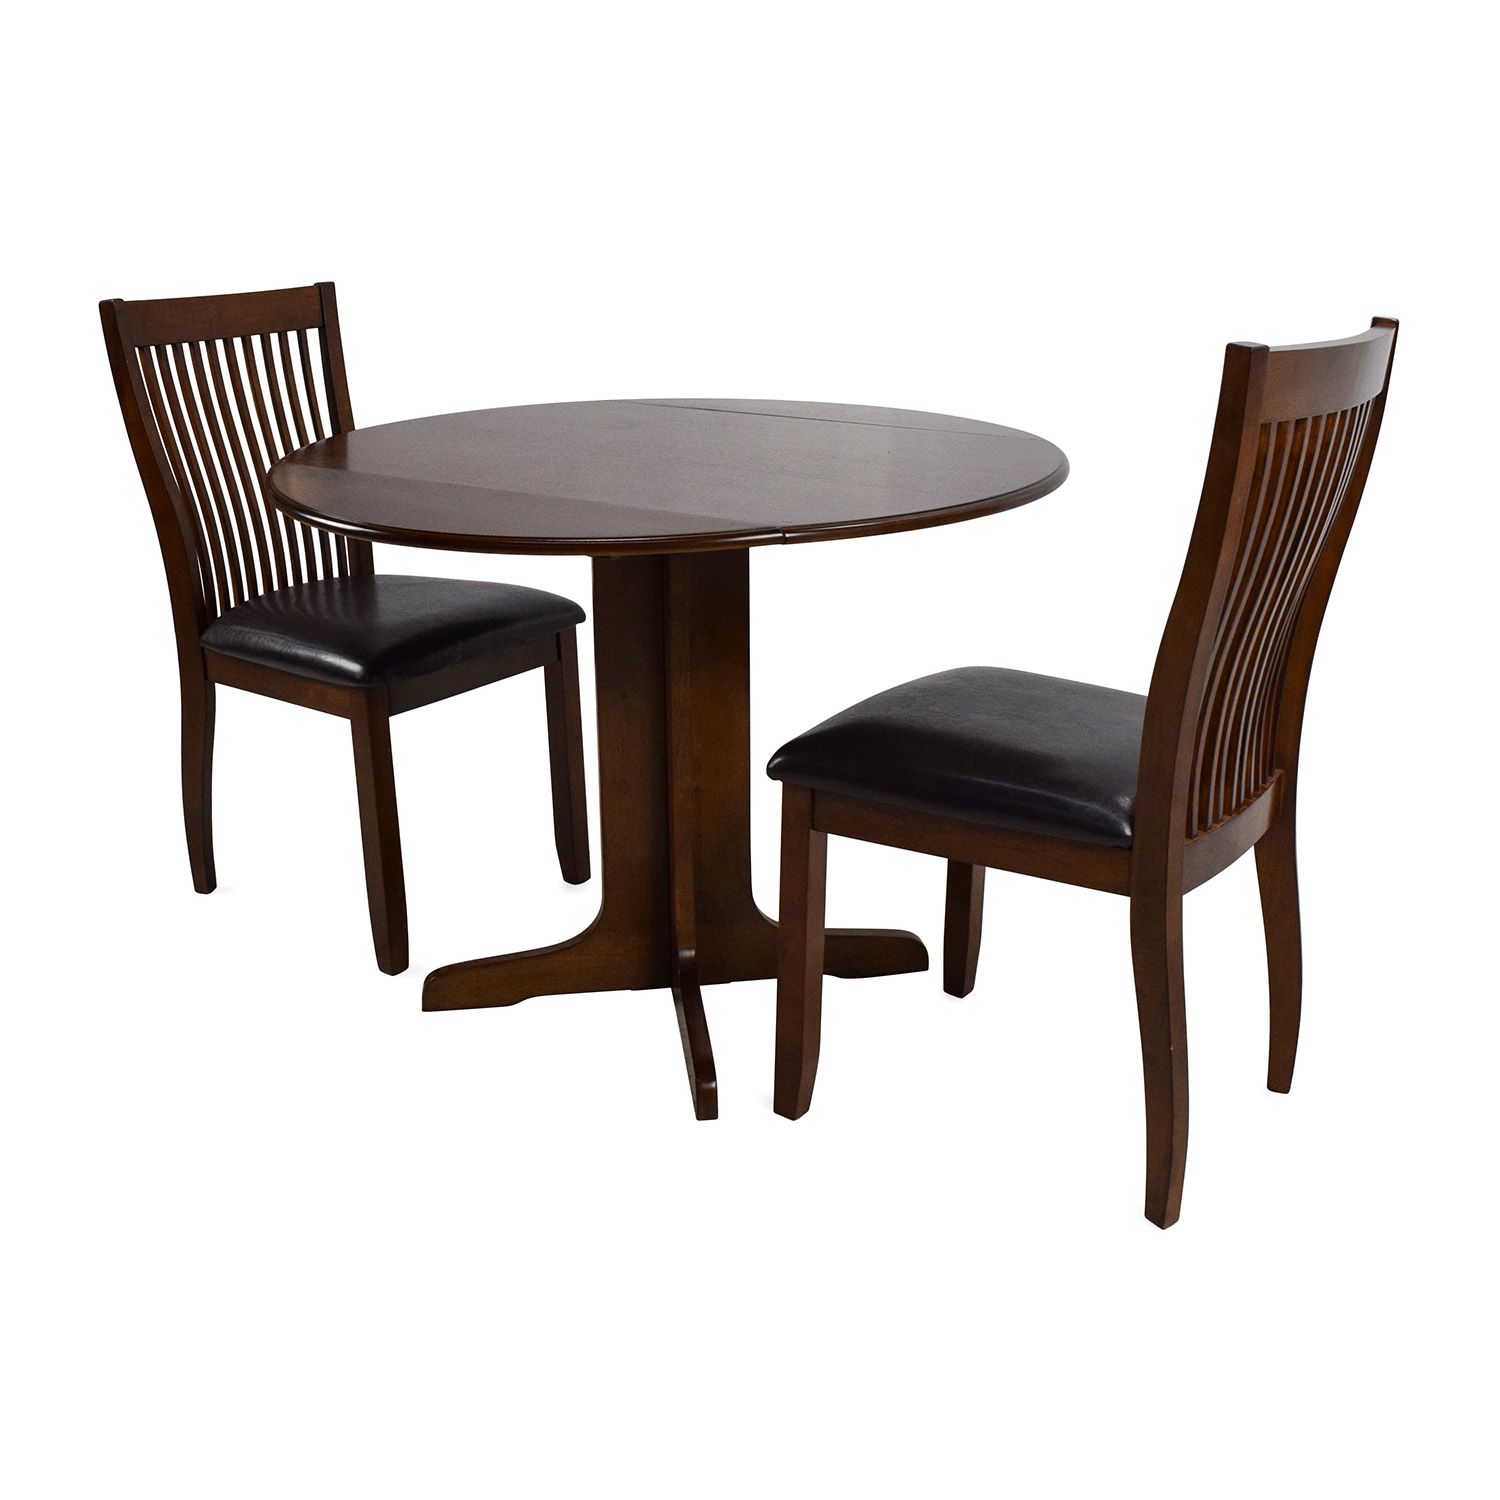 71 off ashley furniture ashley furniture compact dining for Compact dining table